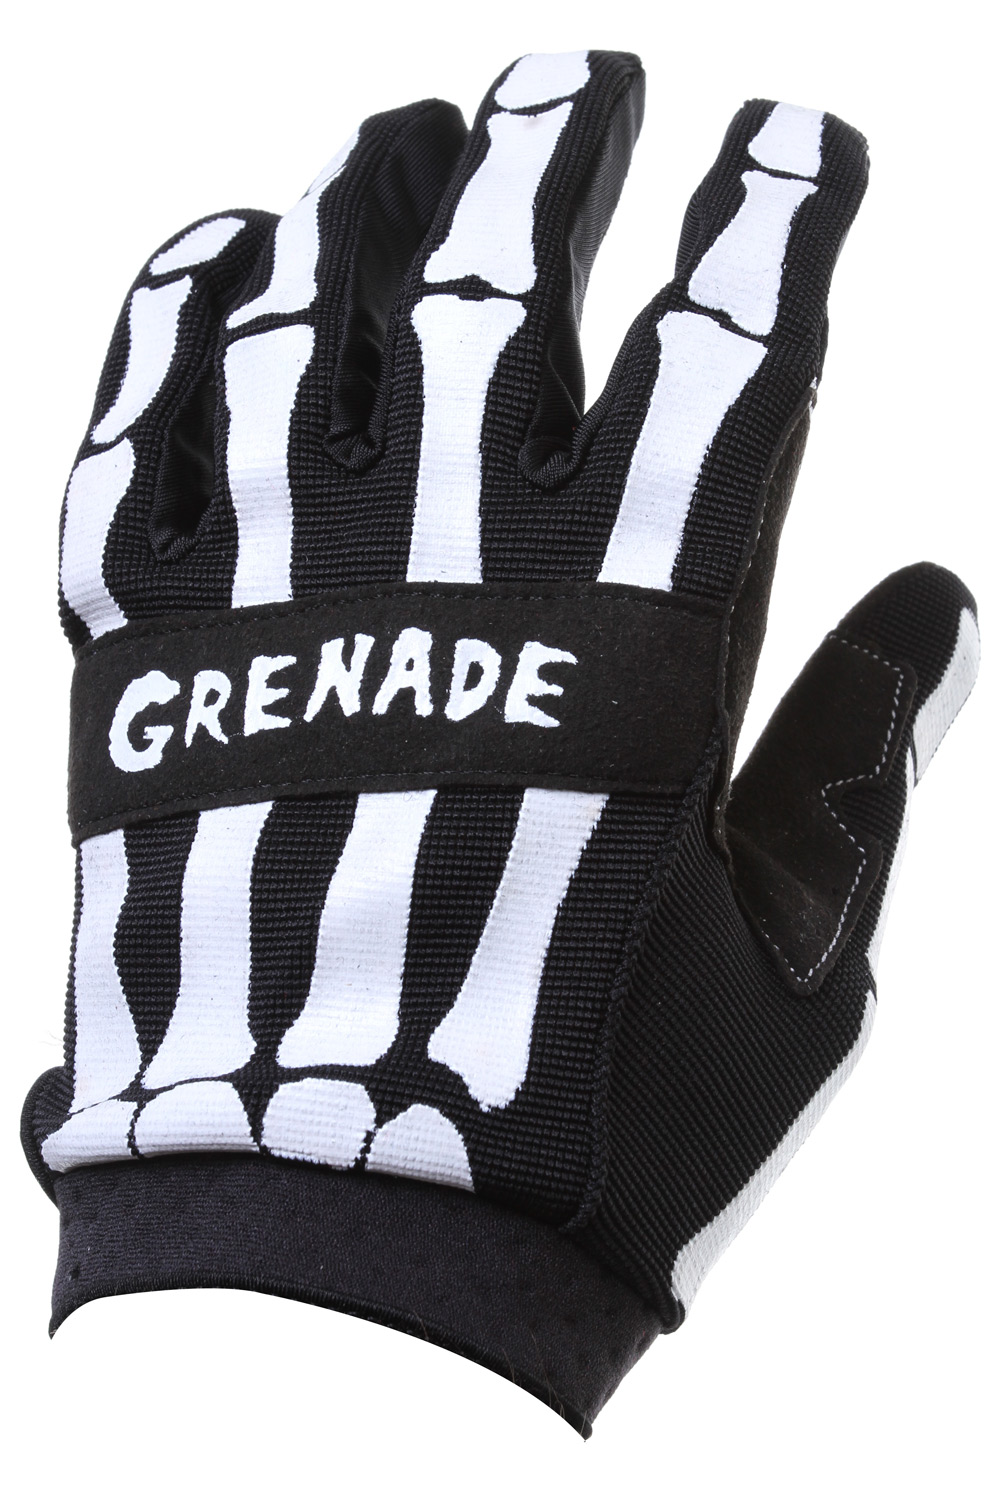 Fitness Grenade Skeleshred BMX Gloves Black - $16.95